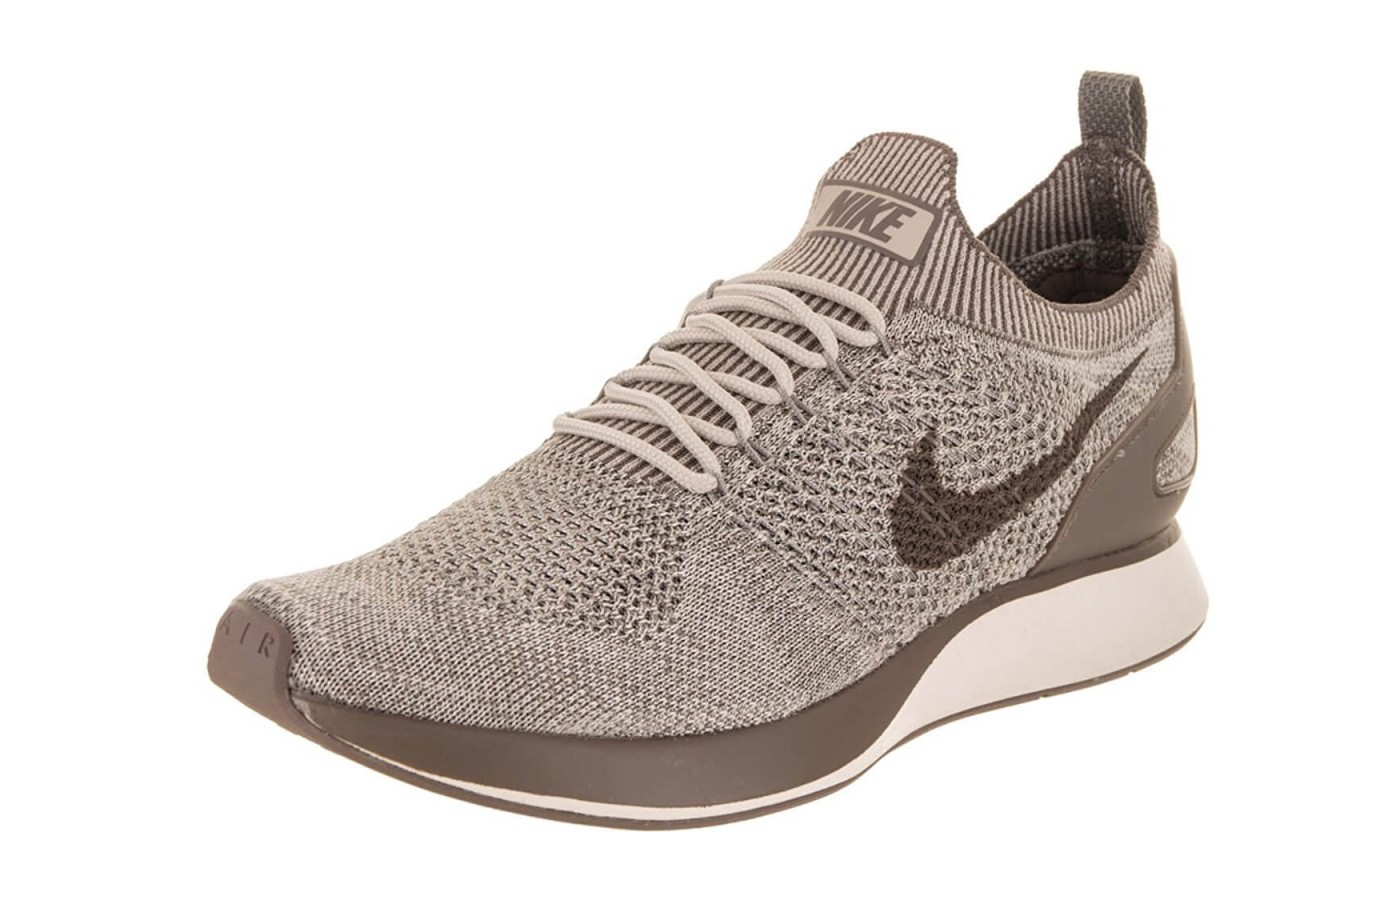 low priced 30086 e8f1a The Nike Air Zoom Mariah Flyknit Racer features a breathable Flyknit upper  ...